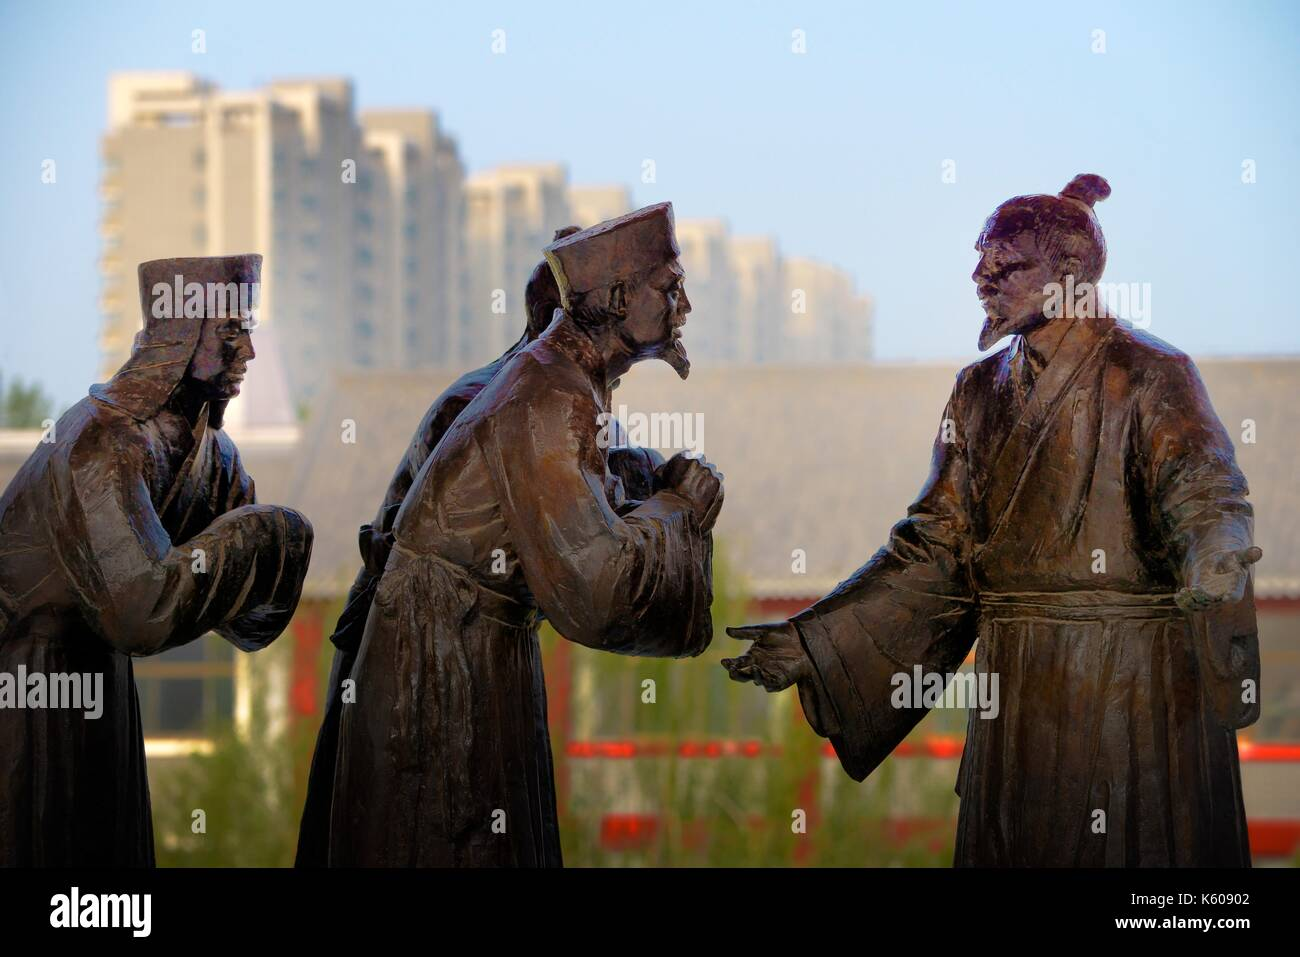 Dongzi Culture Park, Dezhou, China. Statue of Confucian philosopher Dong Zhongshu talking with envoys on the Reading Platform - Stock Image